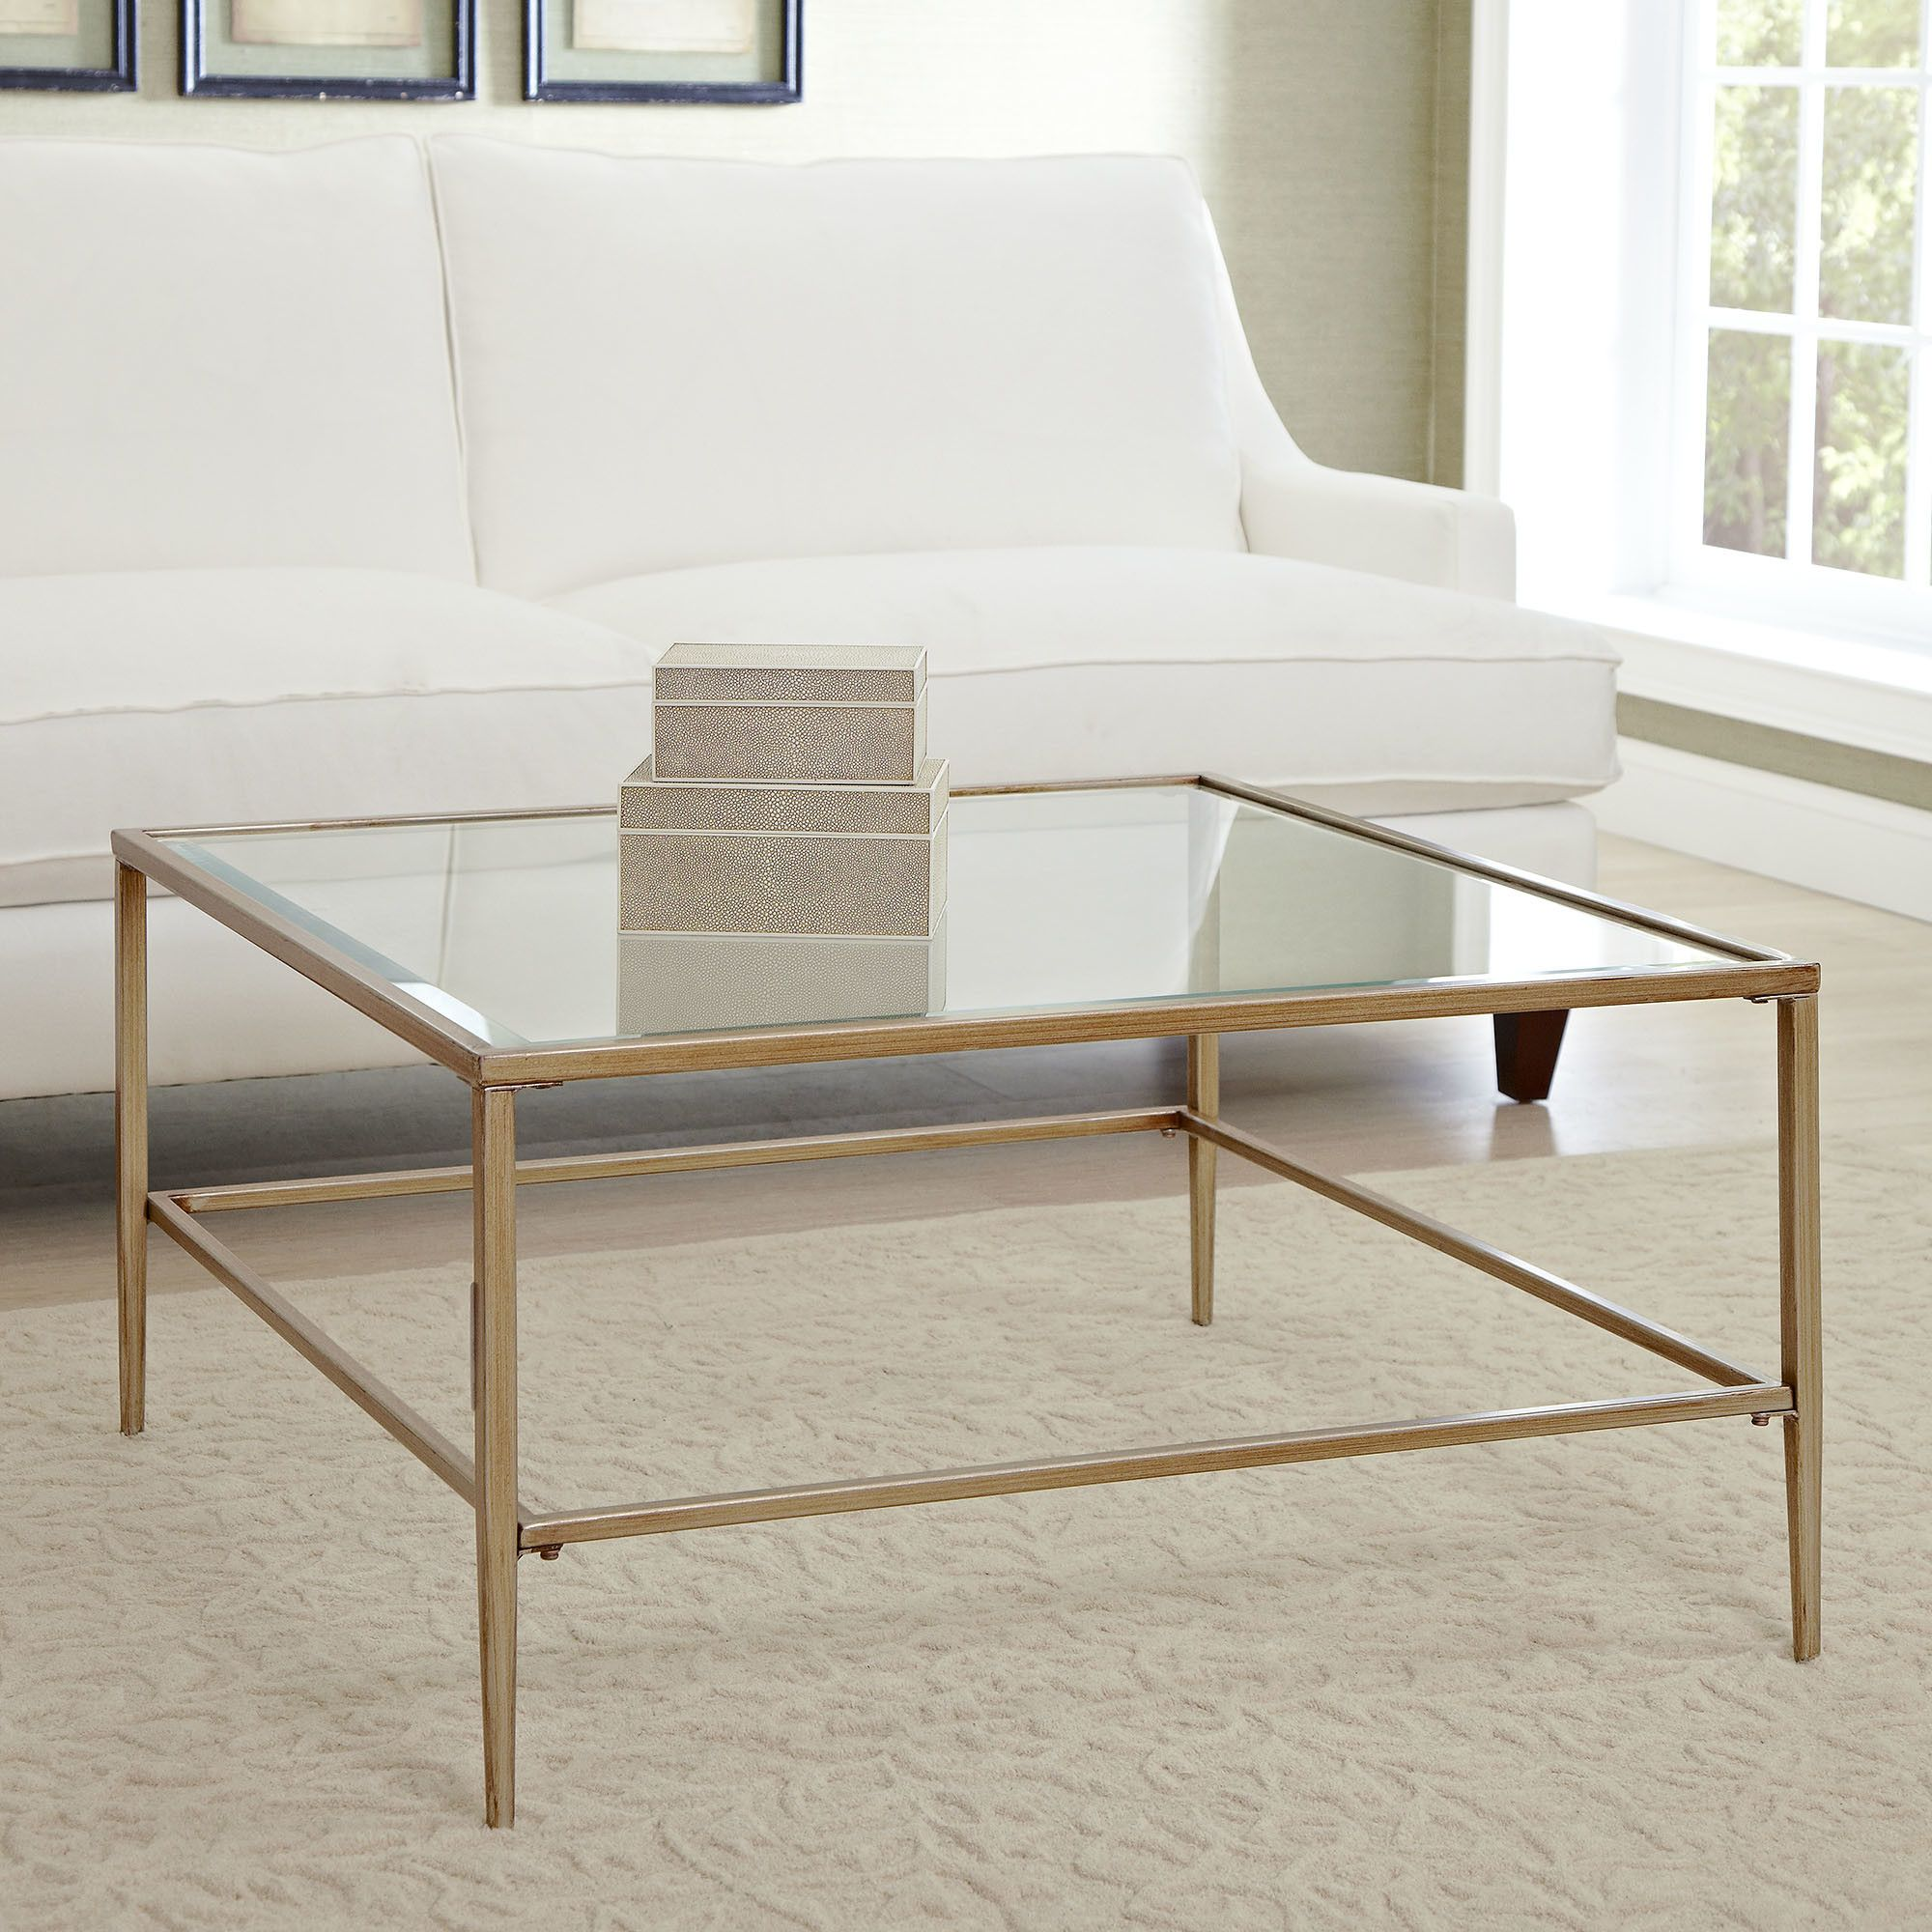 Birch Lane™ Nash Square Coffee Table Sonder Pinterest